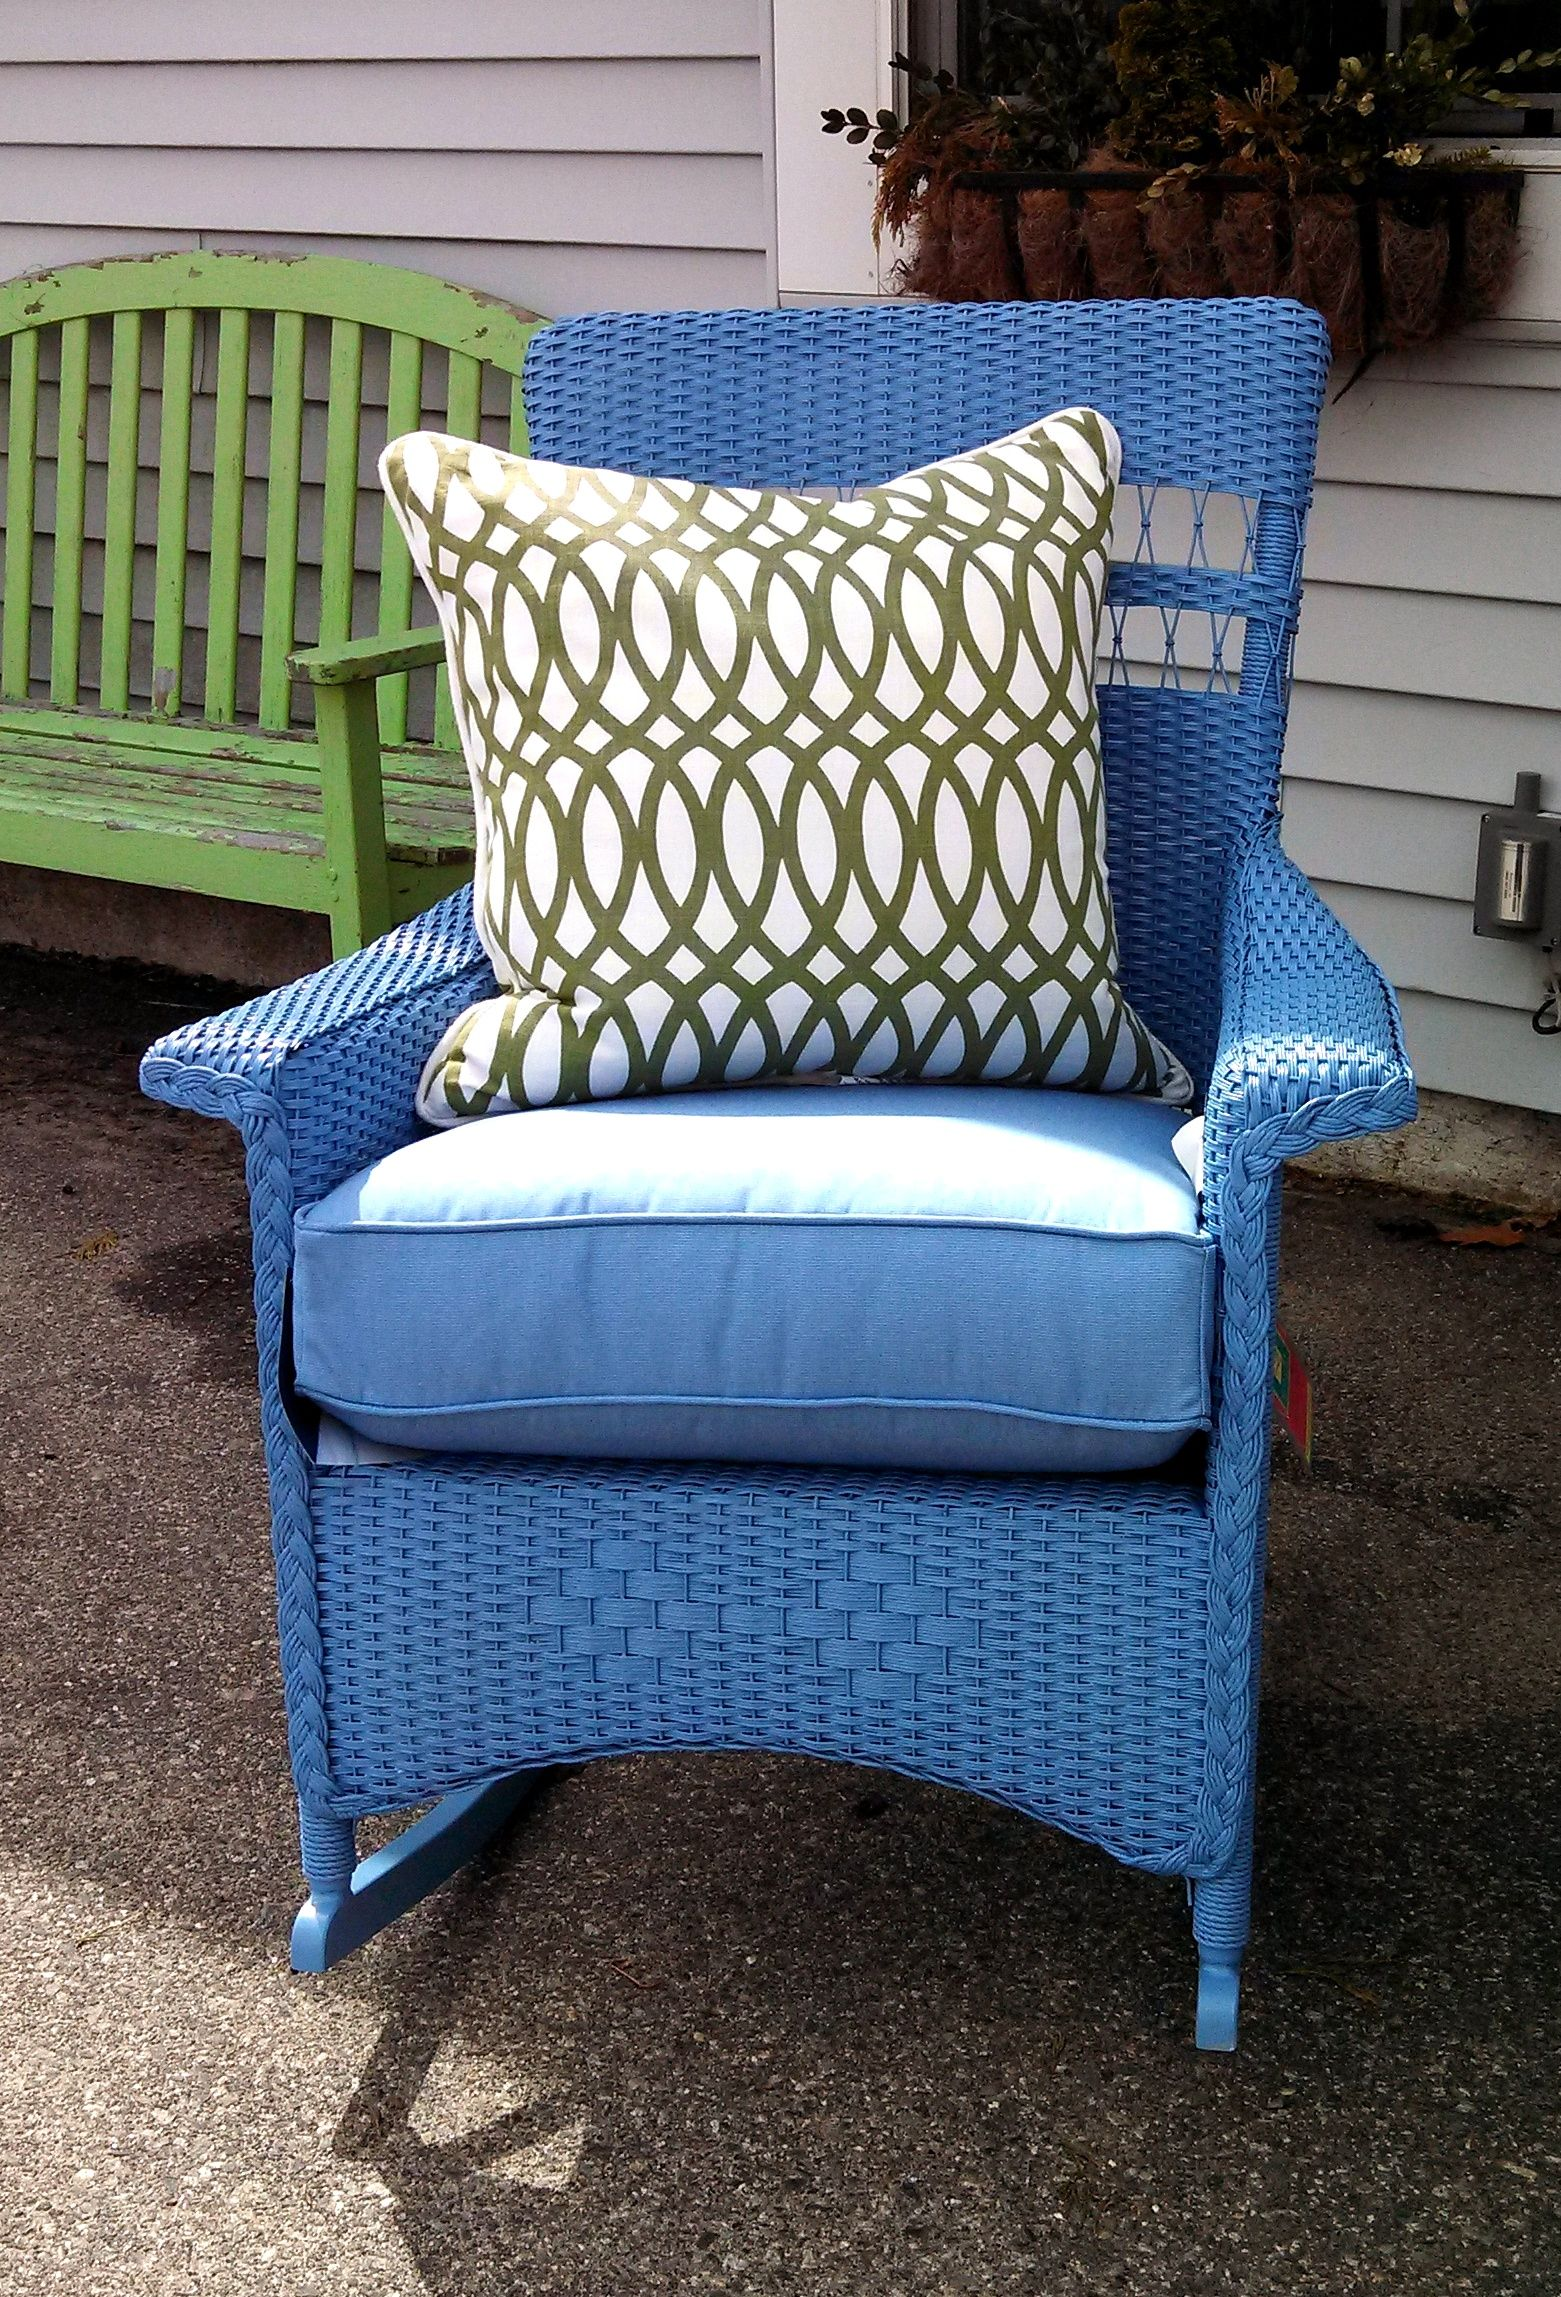 New Lloyd Flanders outdoor wicker rocker Relax